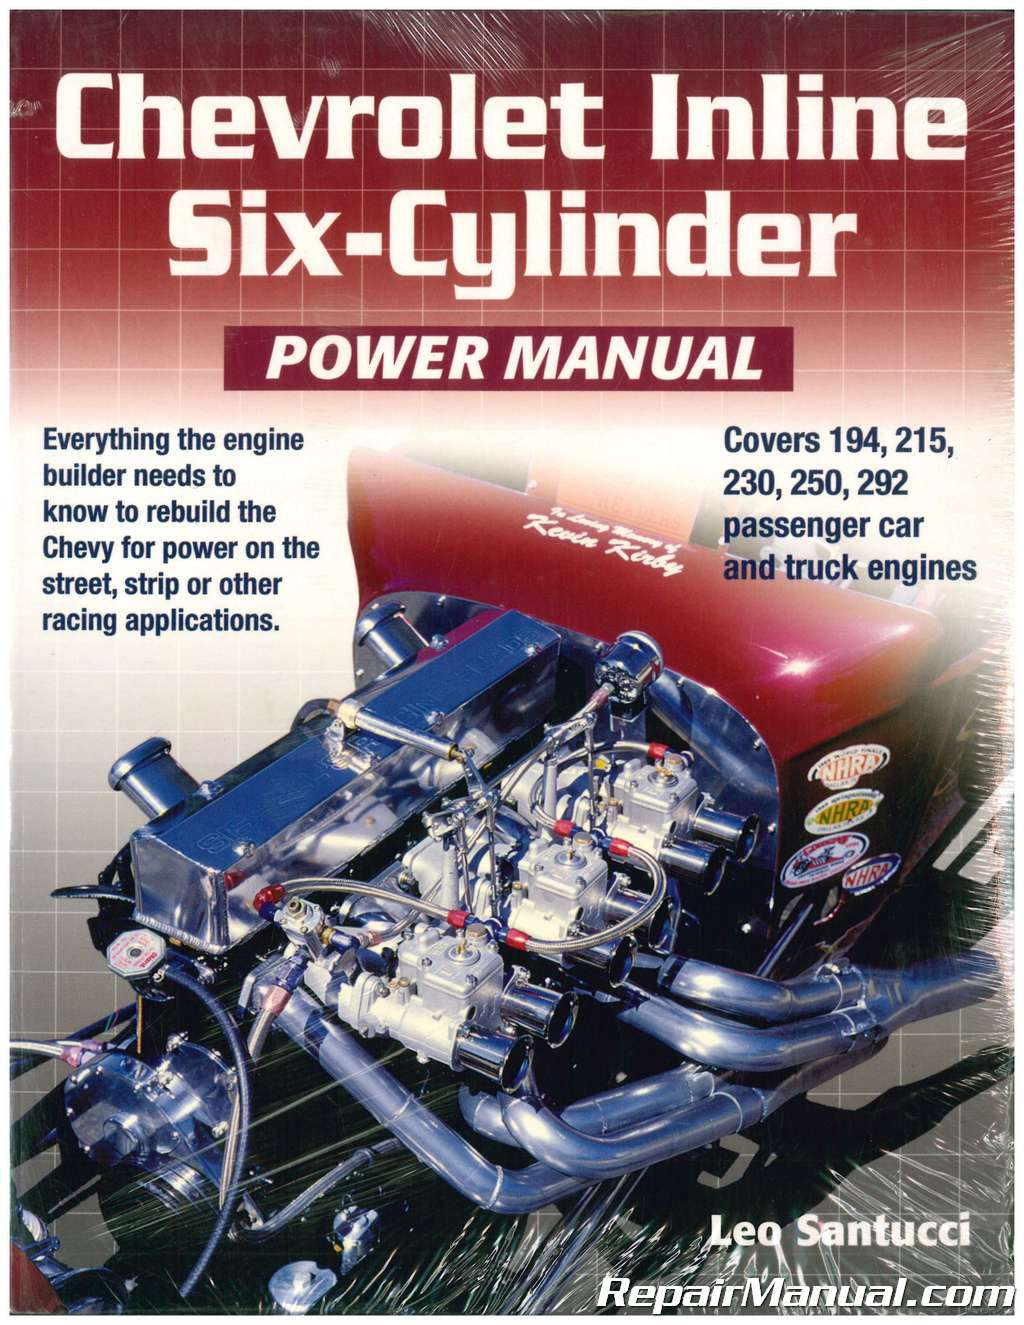 Chevrolet inline six-cylinder power manual, 2nd edition.